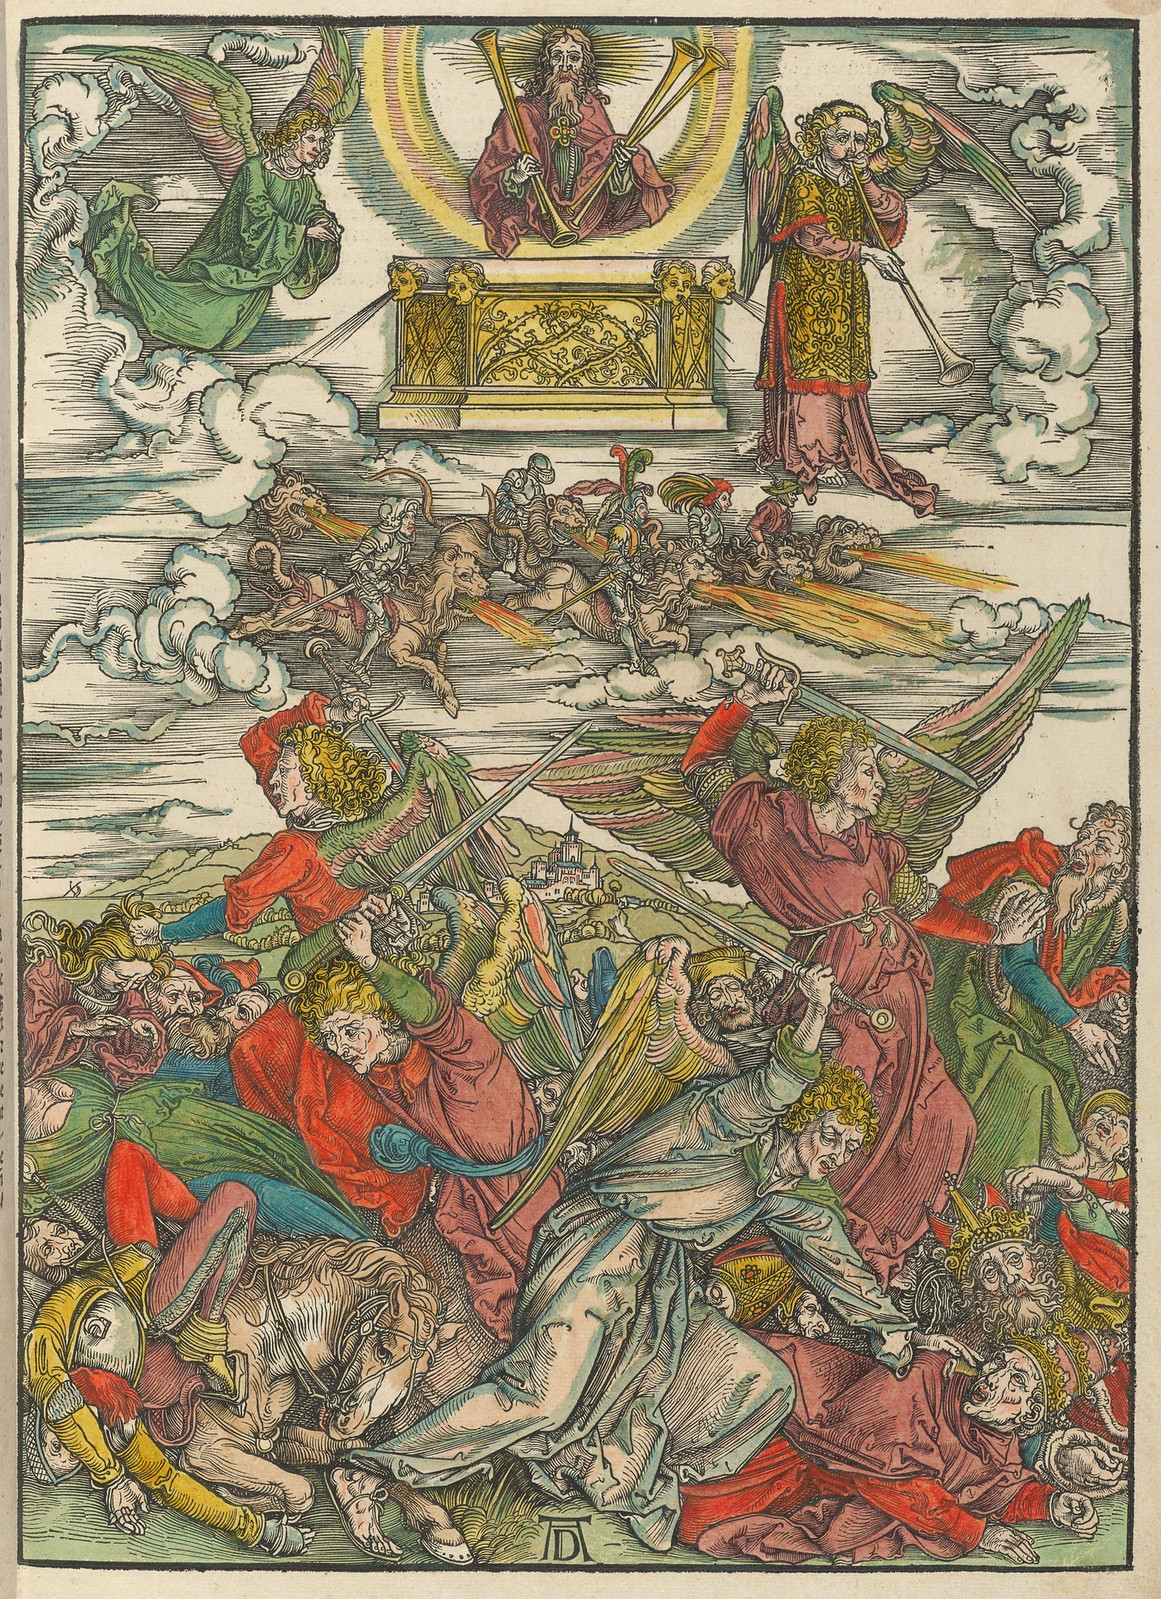 Albrecht Dürer - Four avenging angels., Plate eight of fifteen from the Latin edition of The Apocalypse series, hand colored, printed 1511